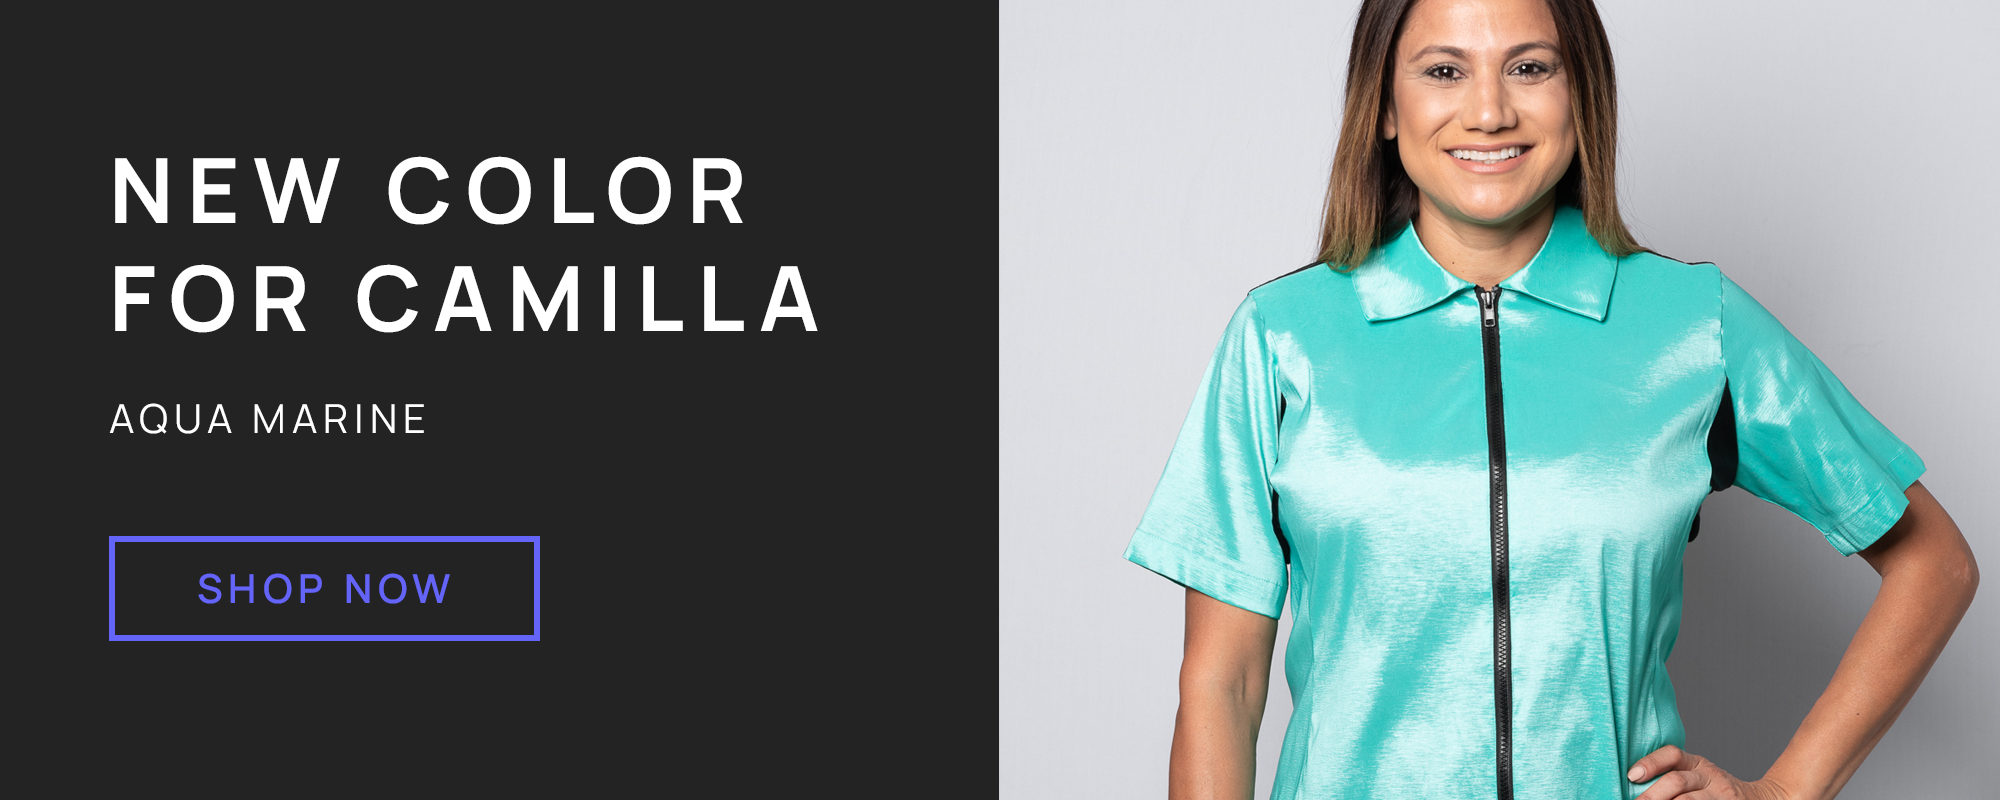 New color for Camilla - Aqua Marine